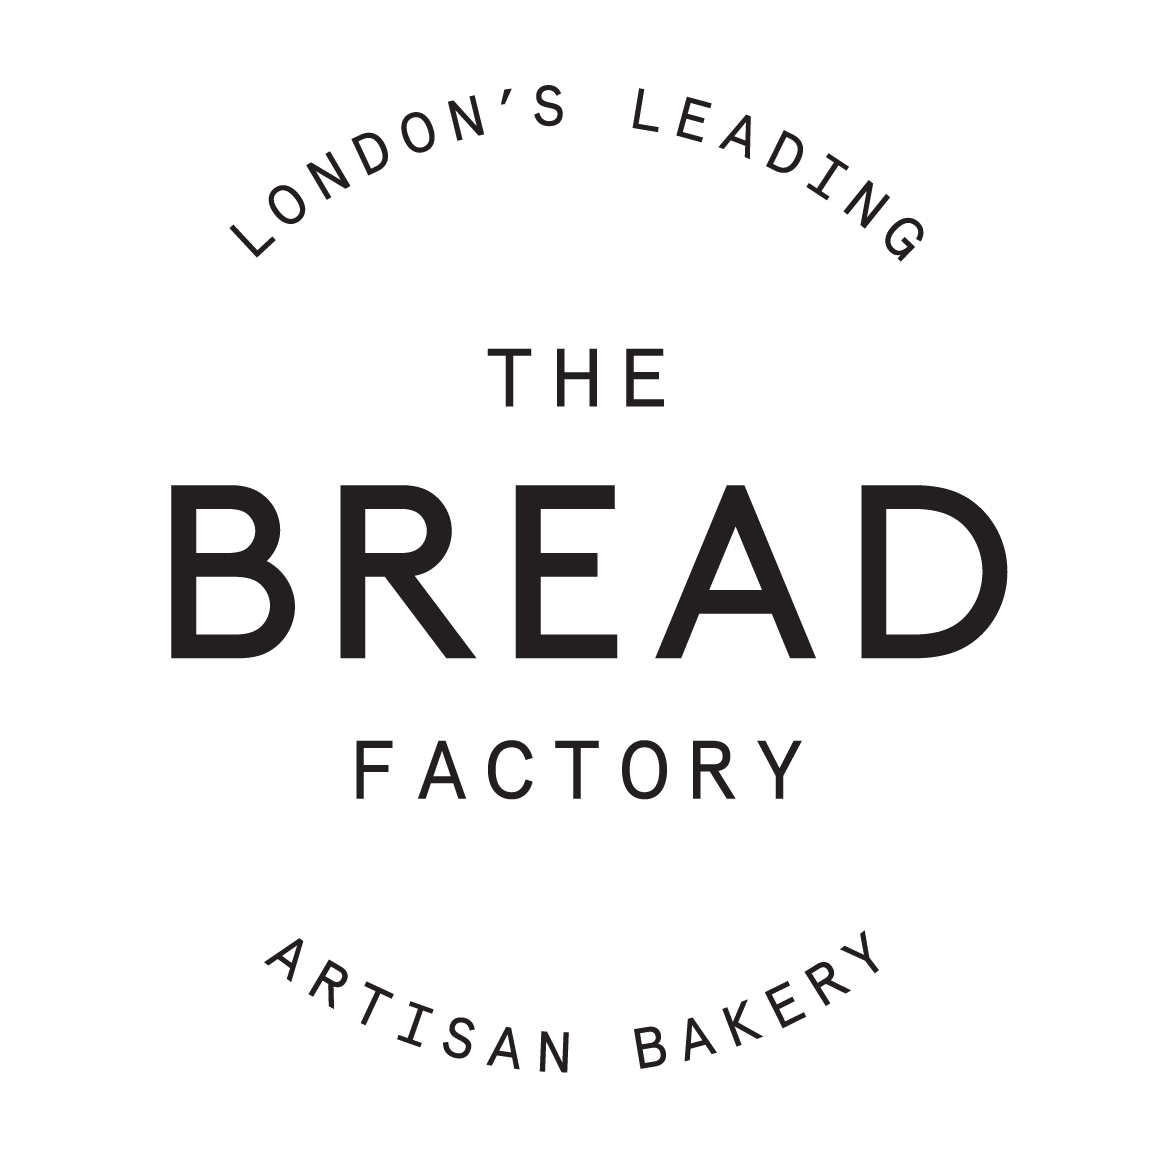 The Bread Factory